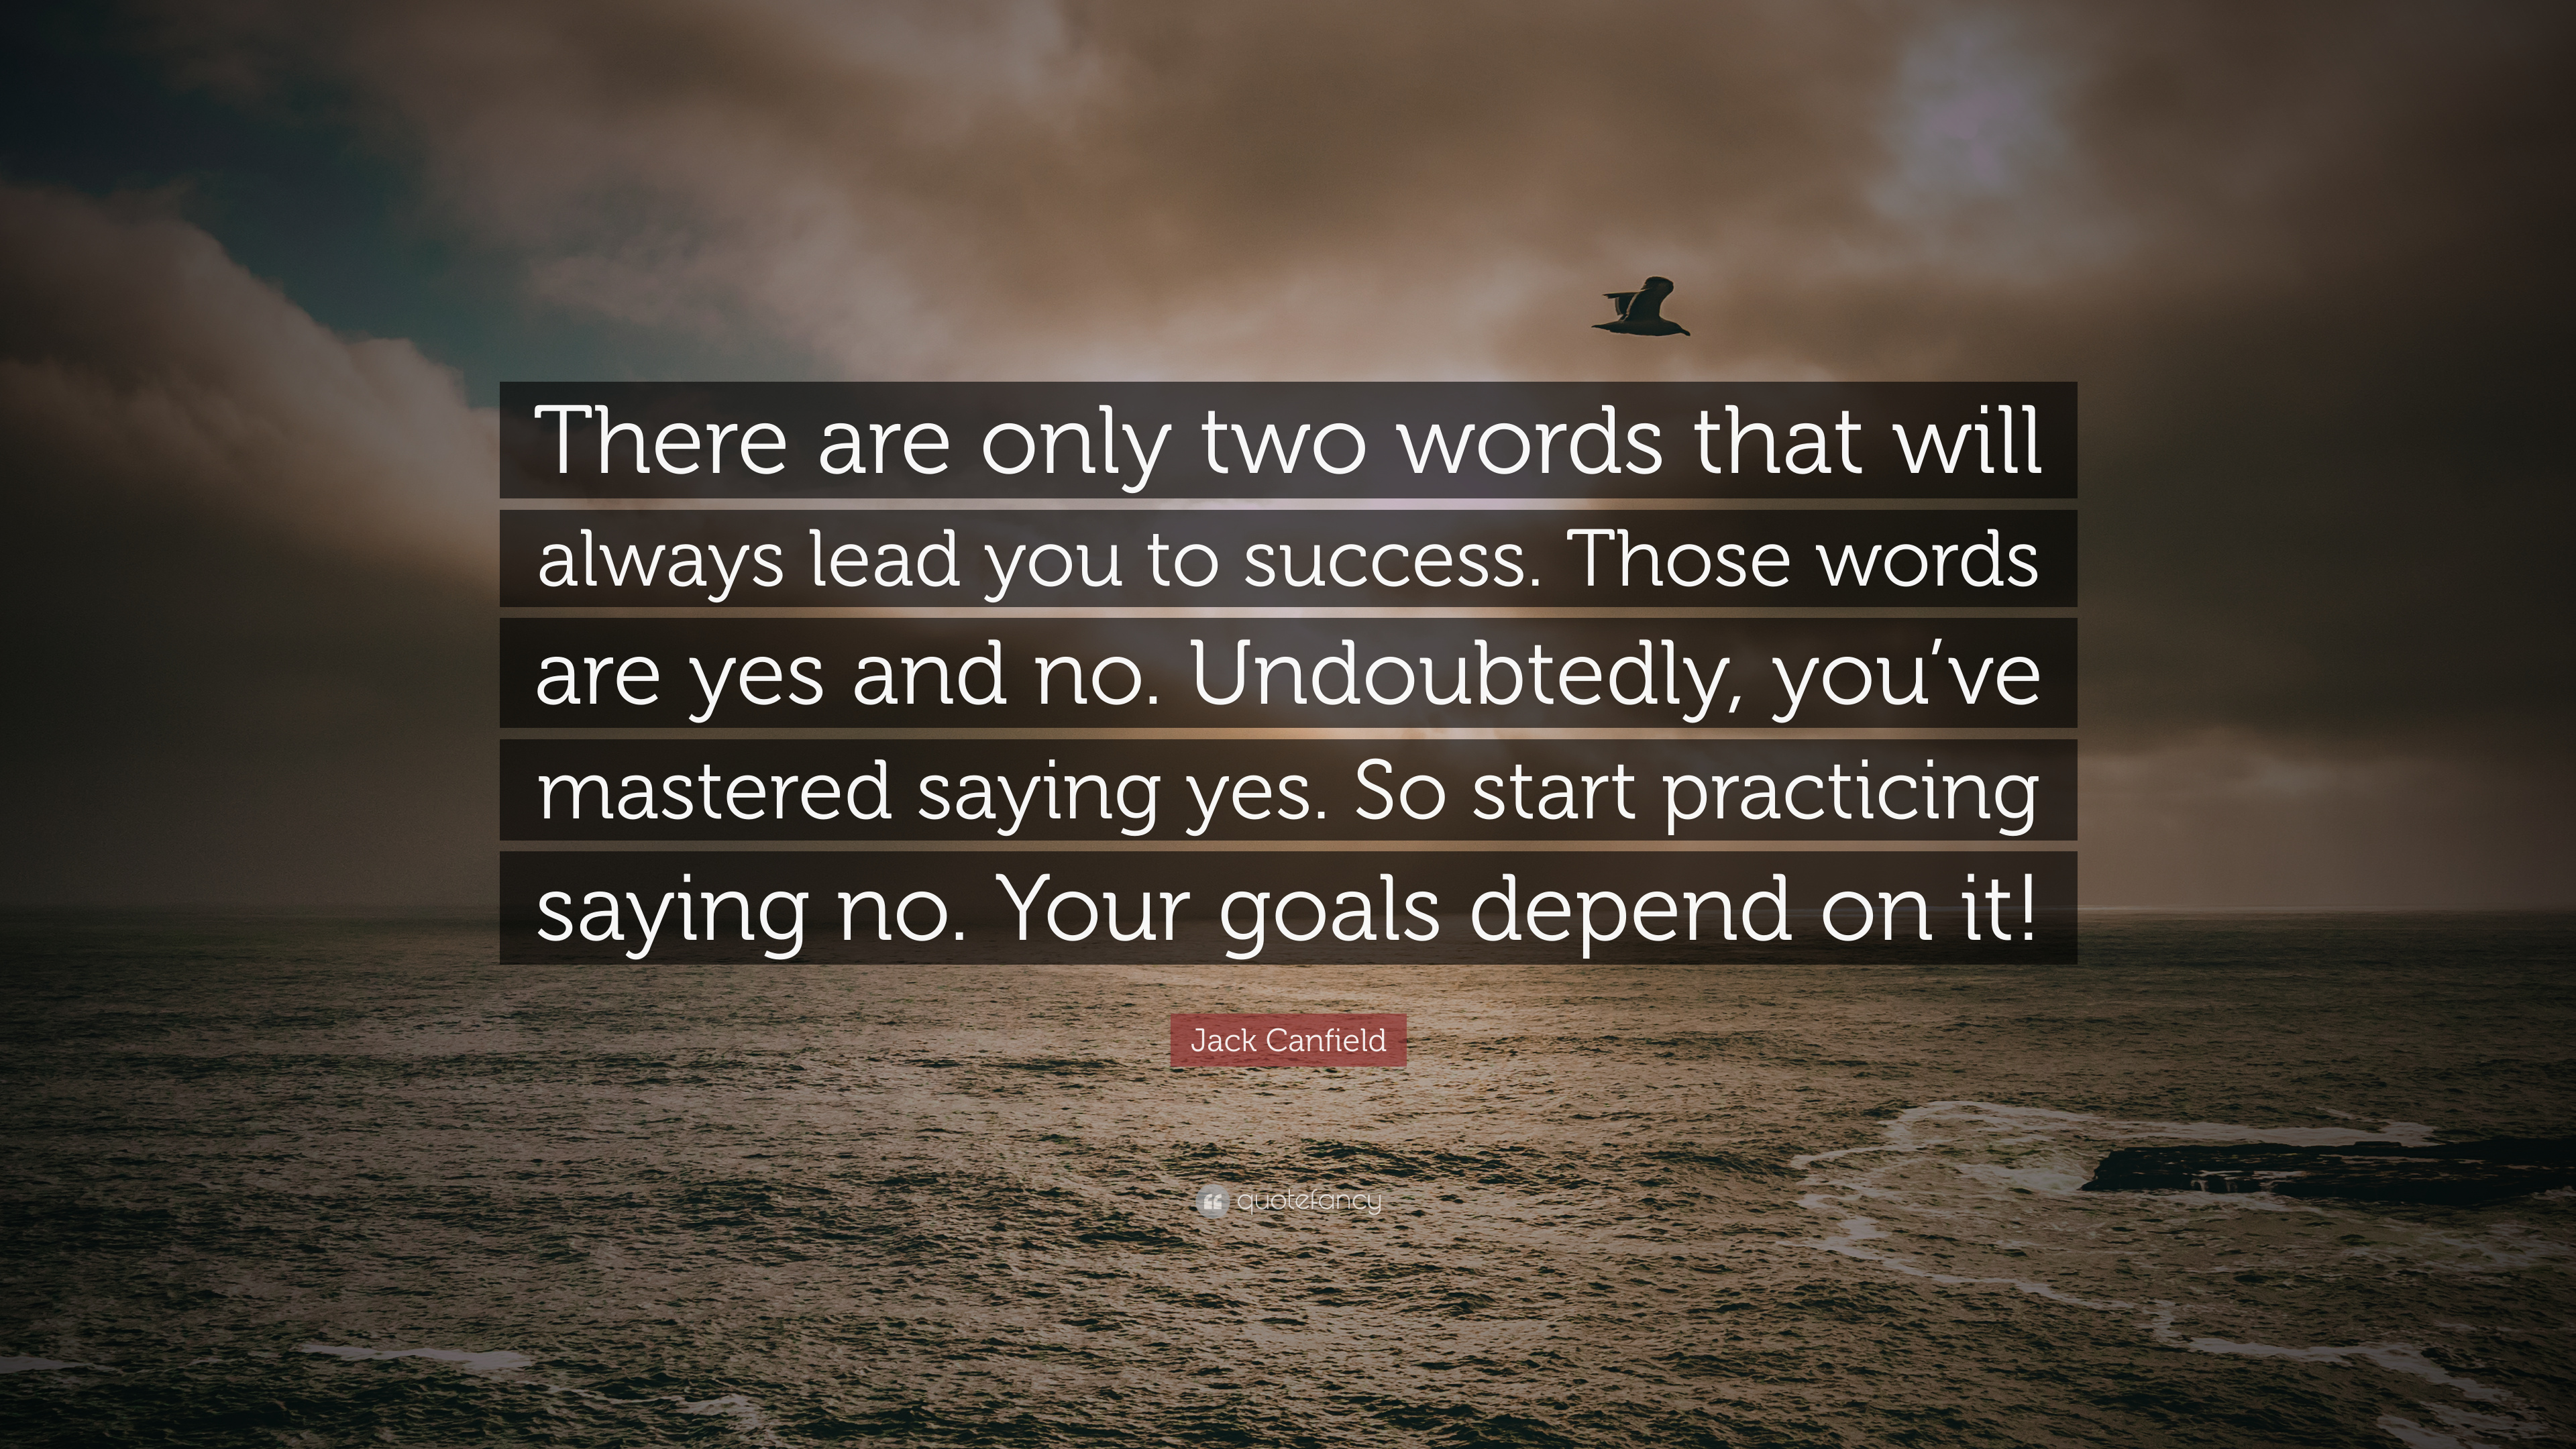 Jack Canfield Quote There Are Only Two Words That Will Always Lead You To Success Those Words Are Yes And No Undoubtedly You Ve Mastered 7 Wallpapers Quotefancy